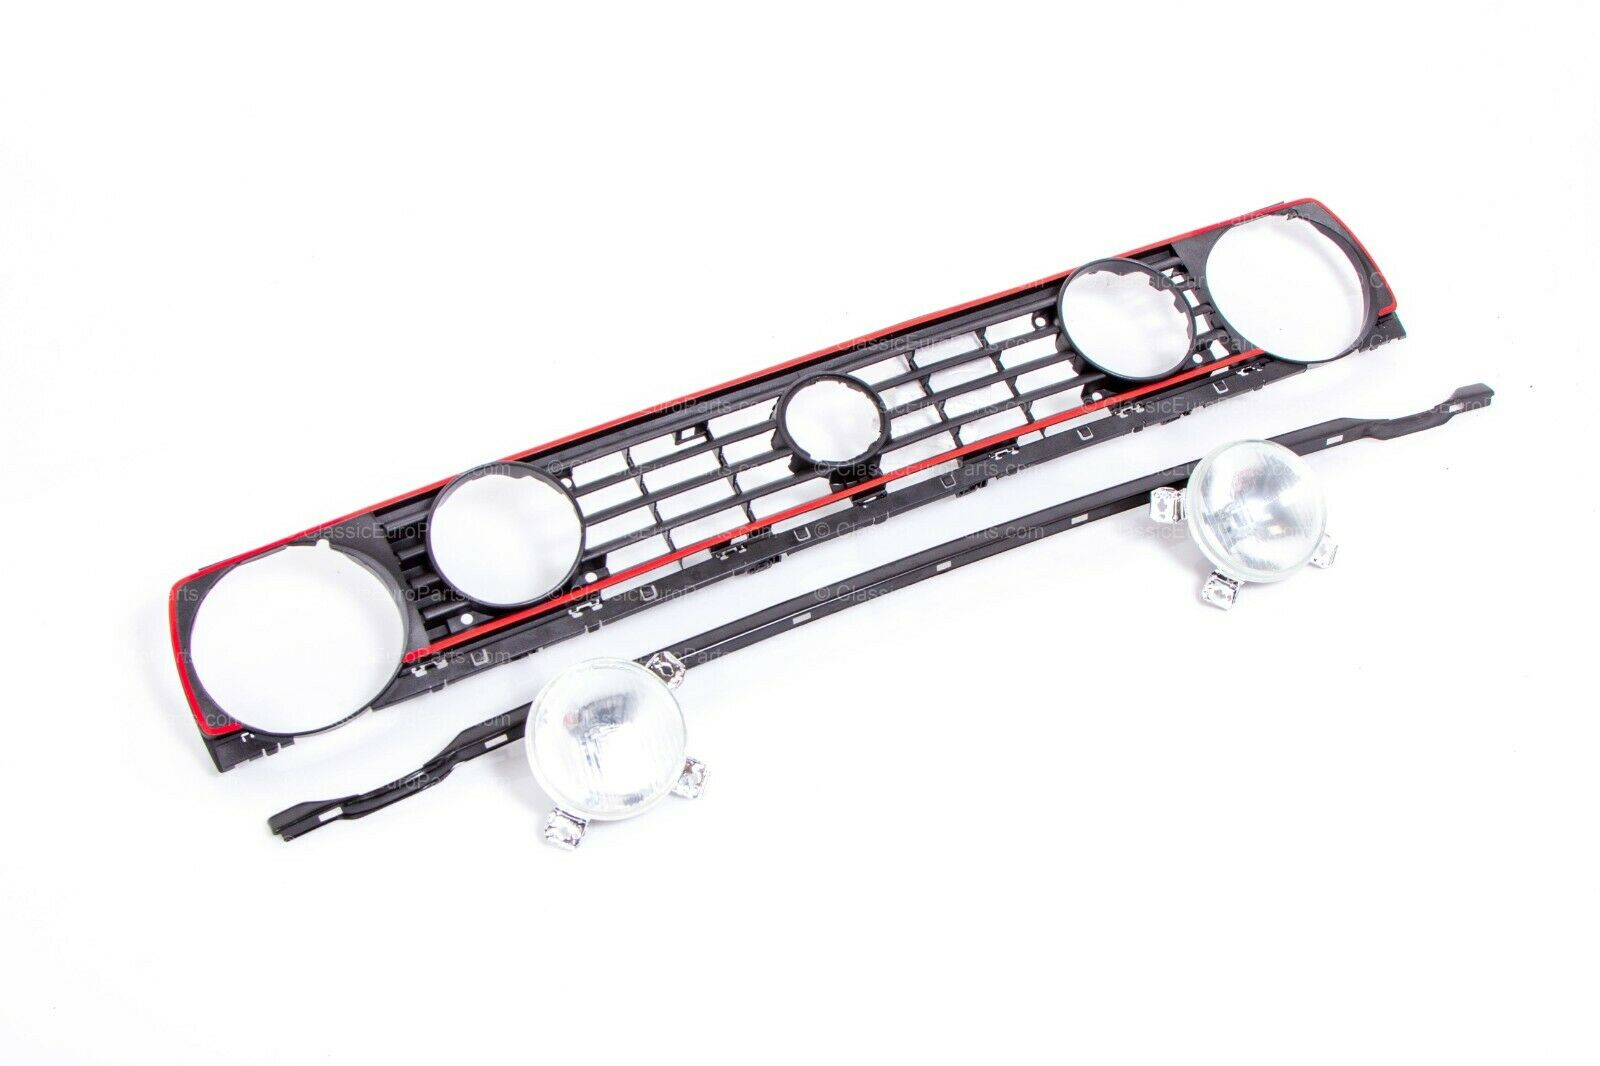 Euro grill + headlight & fog light set for Golf / Rabbit